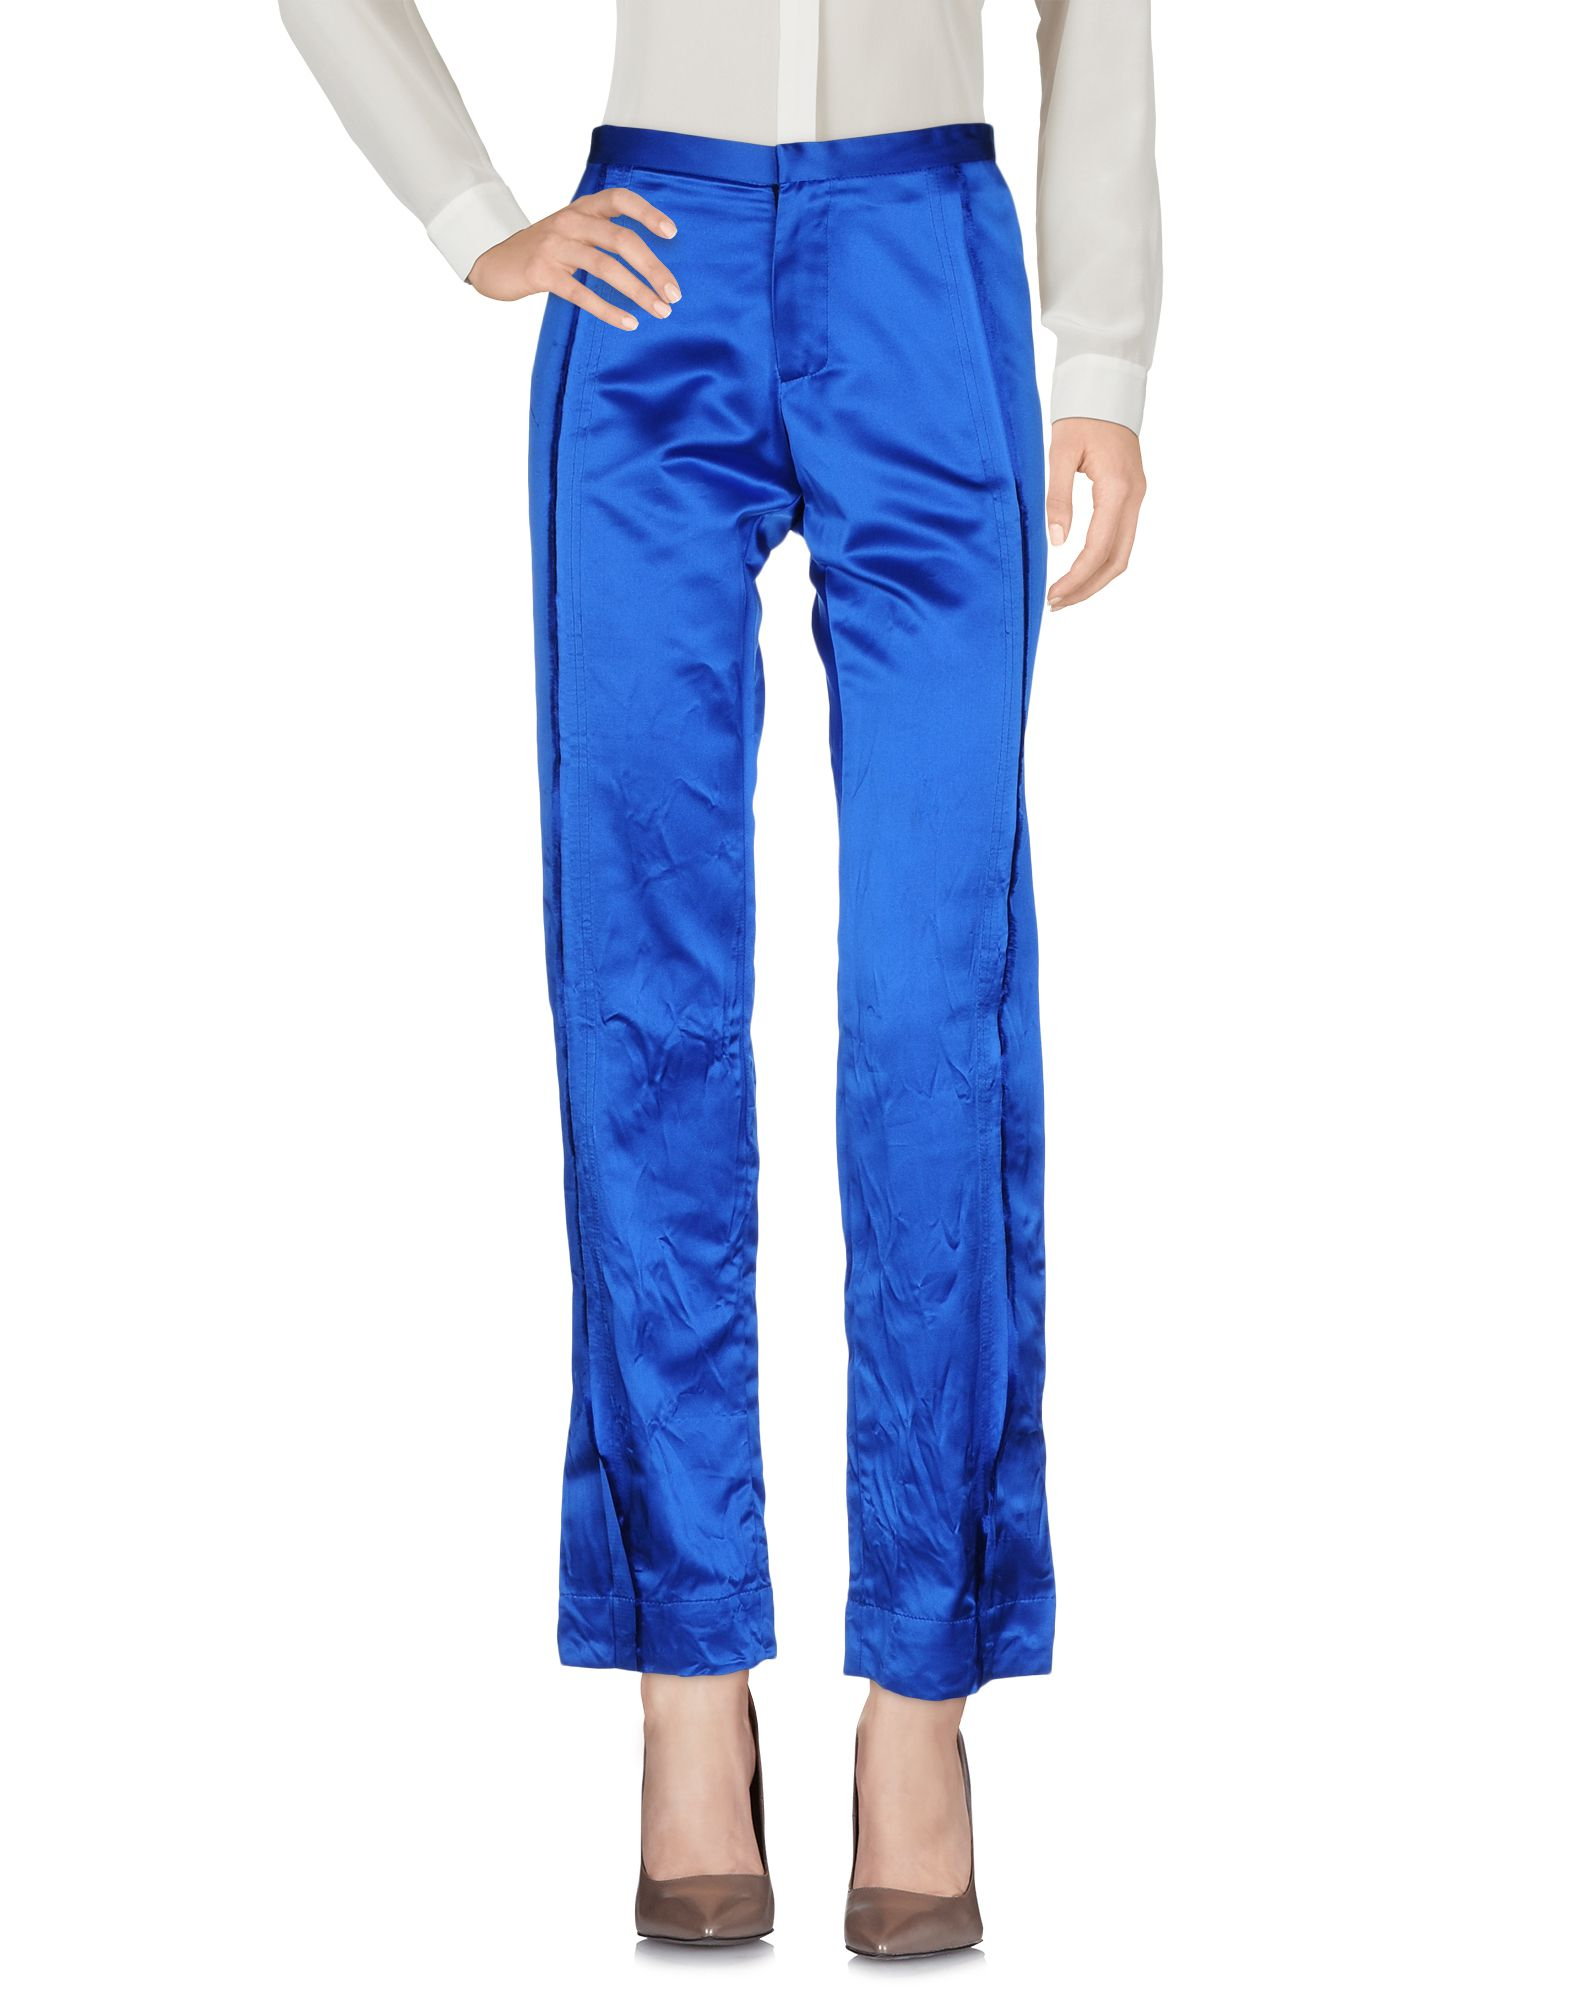 MARTINA SPETLOVA Casual Pants in Bright Blue